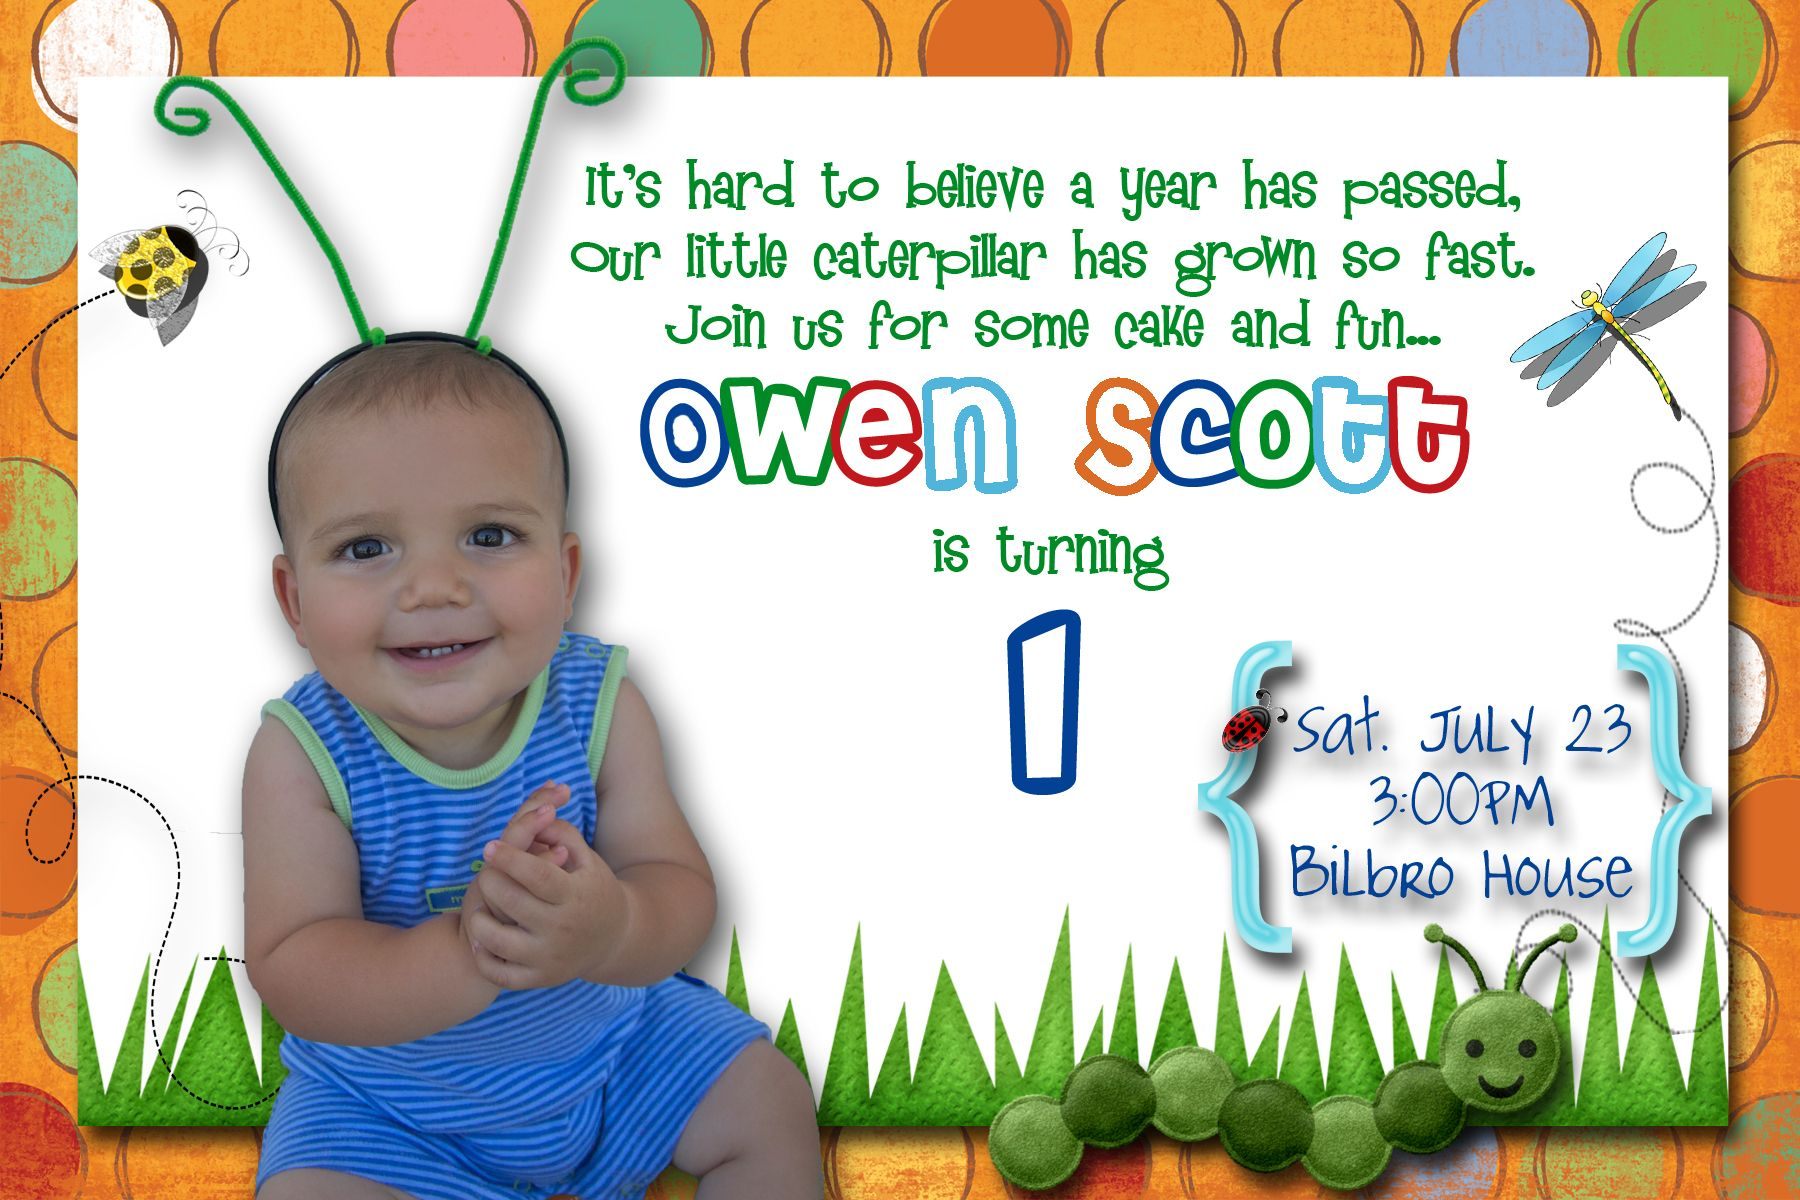 Bug birthday theme caterpillar bug themed birthday party brady first birthday party invitation ideas stopboris